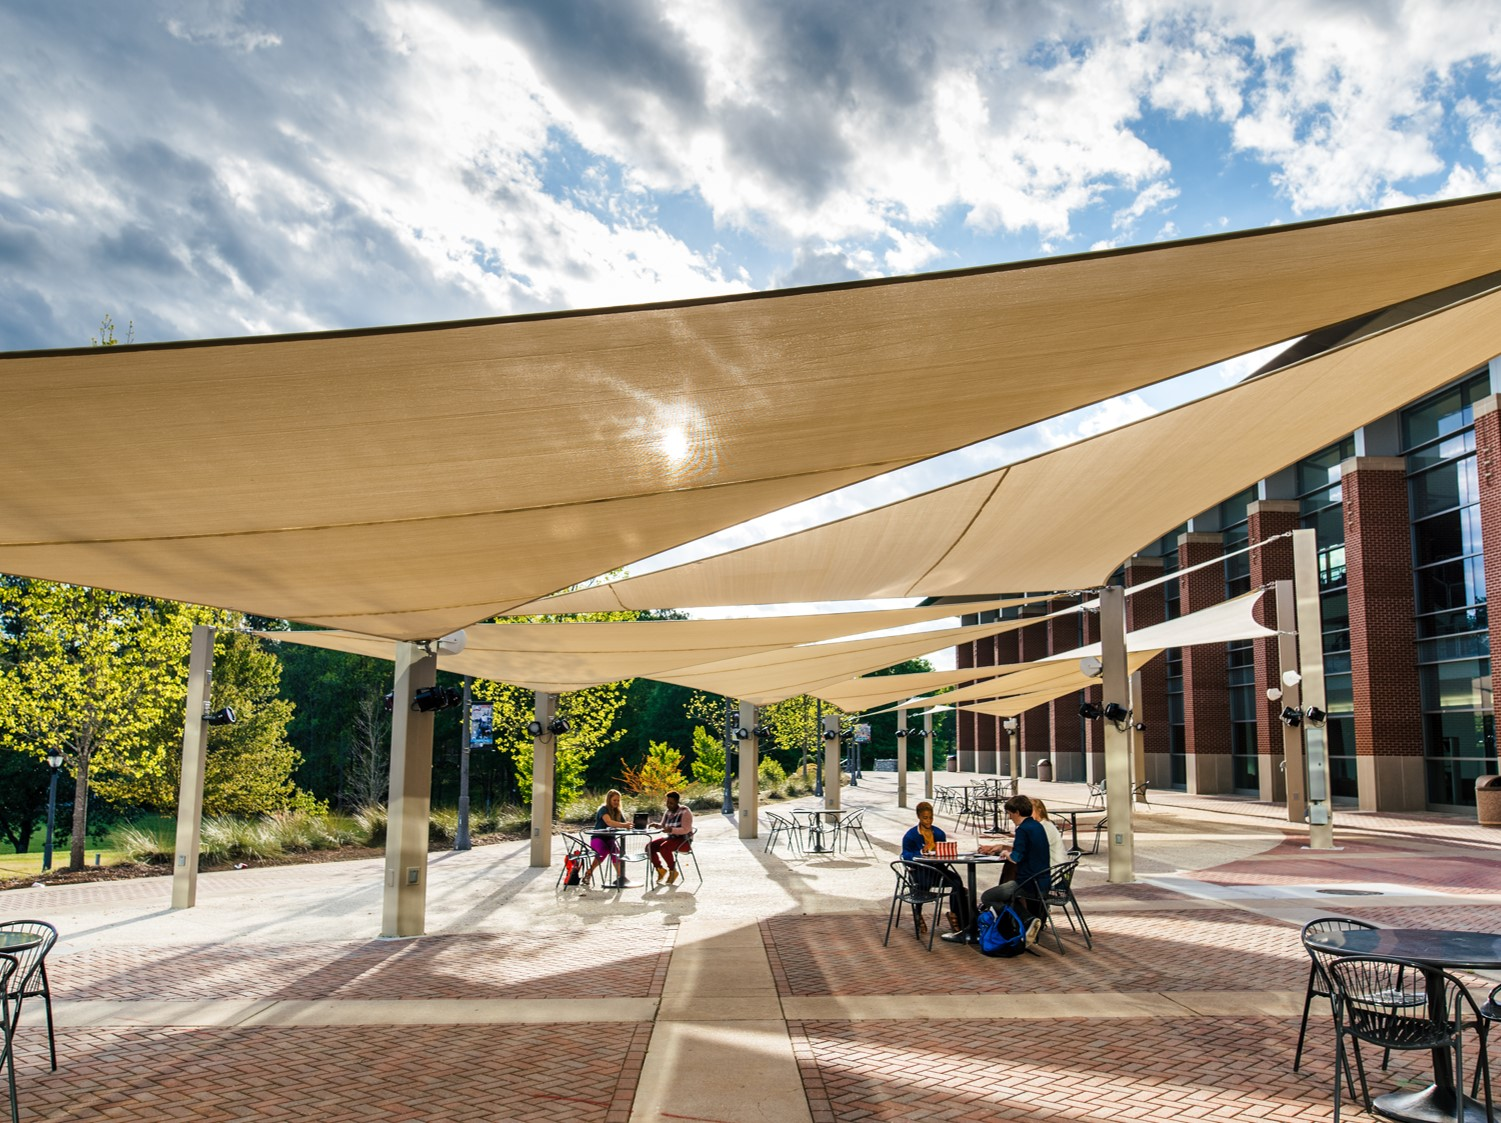 Superior Recreational Products - Designing Sites With Shade in Mind